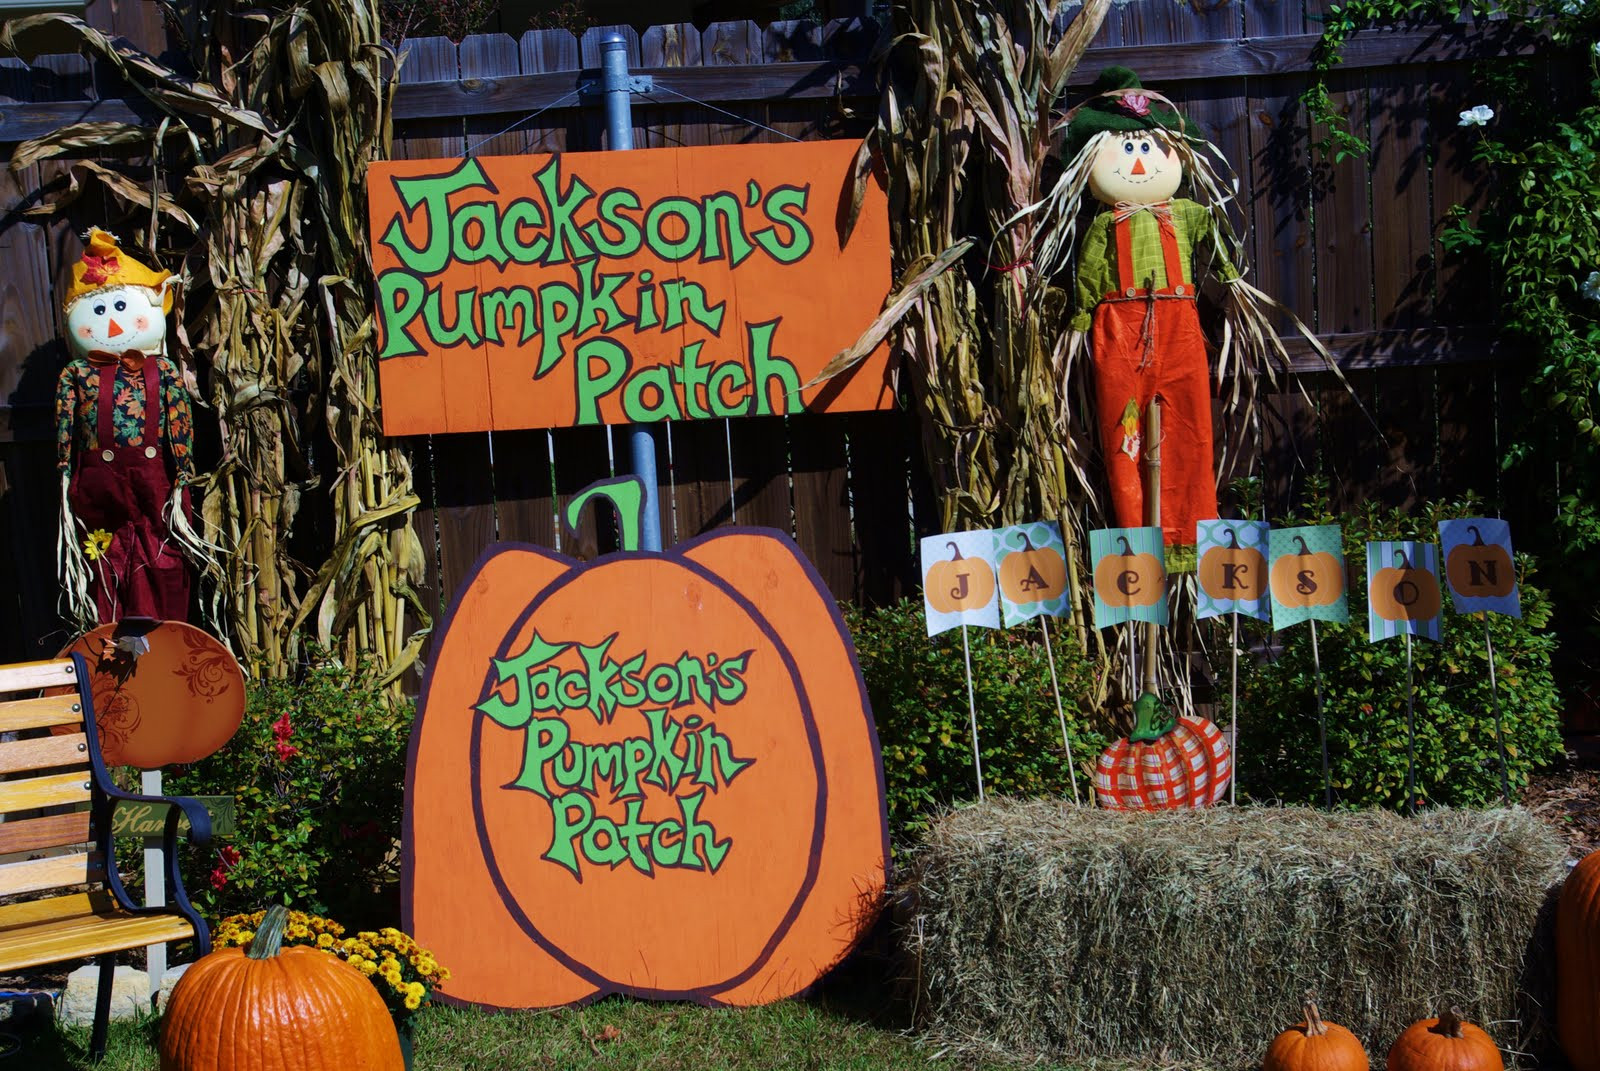 Best ideas about Pumpkin Patch Birthday Party . Save or Pin Choosing Joy Today Jackson s 1st birthday Pumpkin Patch Now.